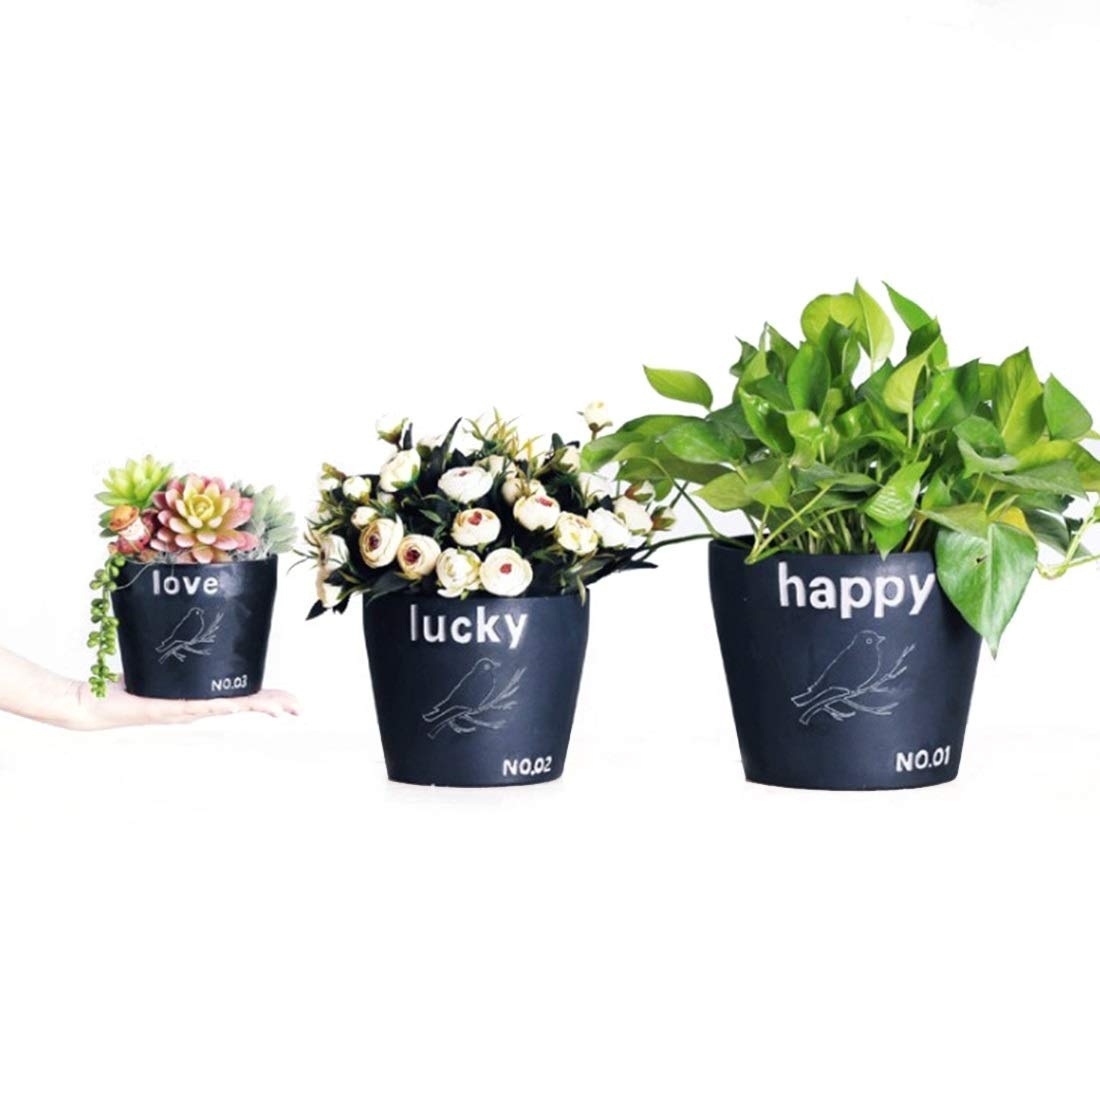 White Happy White Happy WEATLY Green Plant Potted Mandarin Succulent Plant Pots Micro Landscape Office Green Plant Combination With Ornaments (color   White, Shape   Happy)